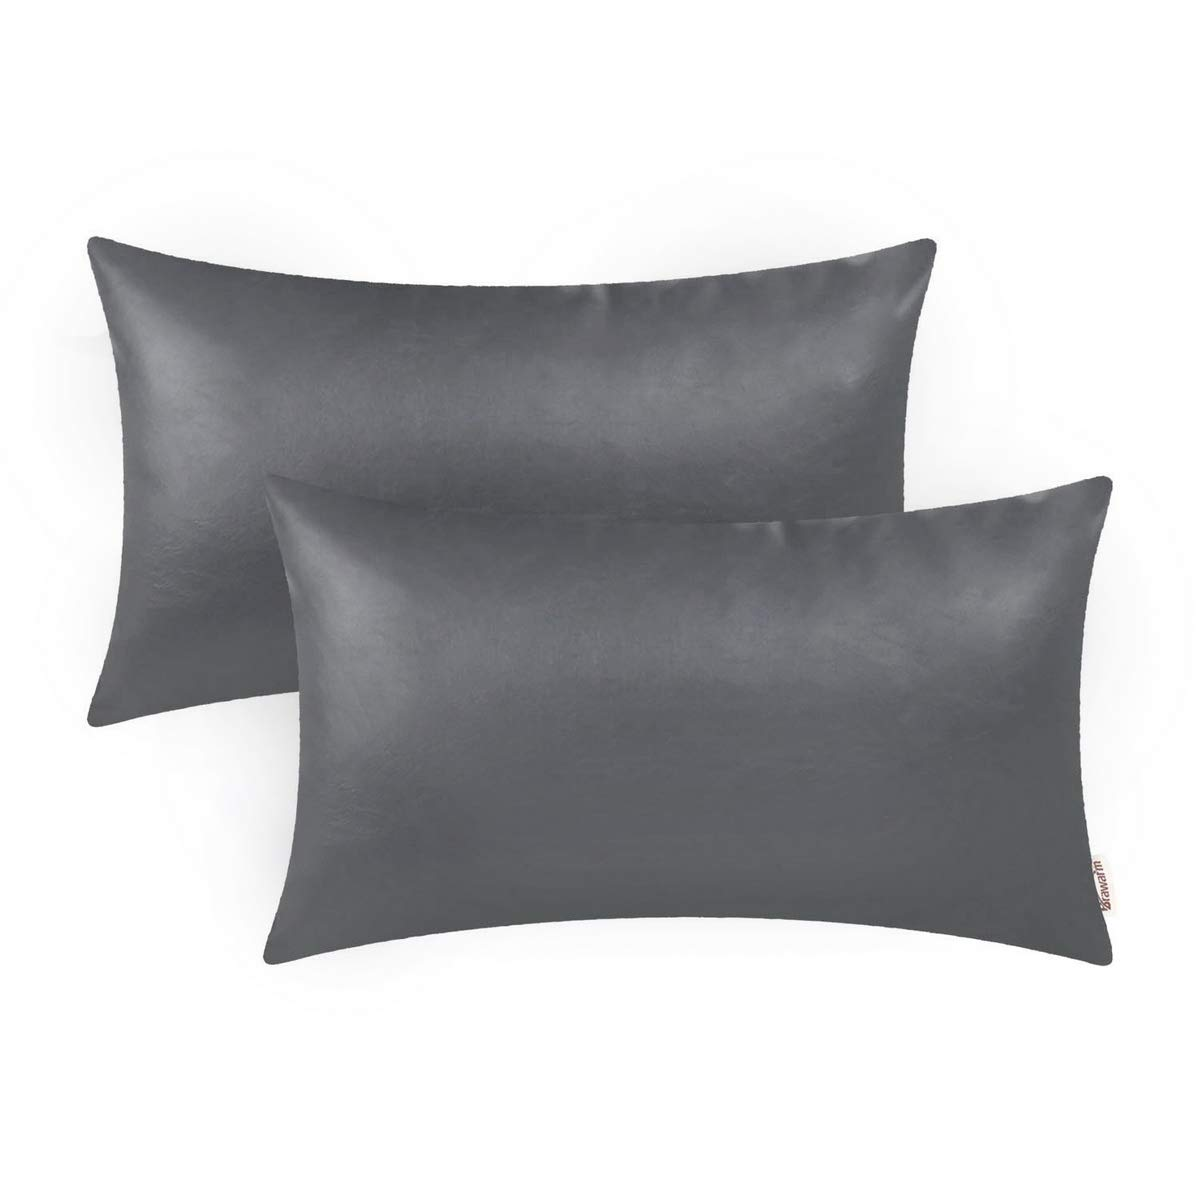 BRAWARM Pack of 2 Cozy Bolster Pillow Covers Cases for Couch Sofa Home Decoration Solid Dyed Soft Faux Leather Both Sides 12 X 20 Inches Charcoal Gray